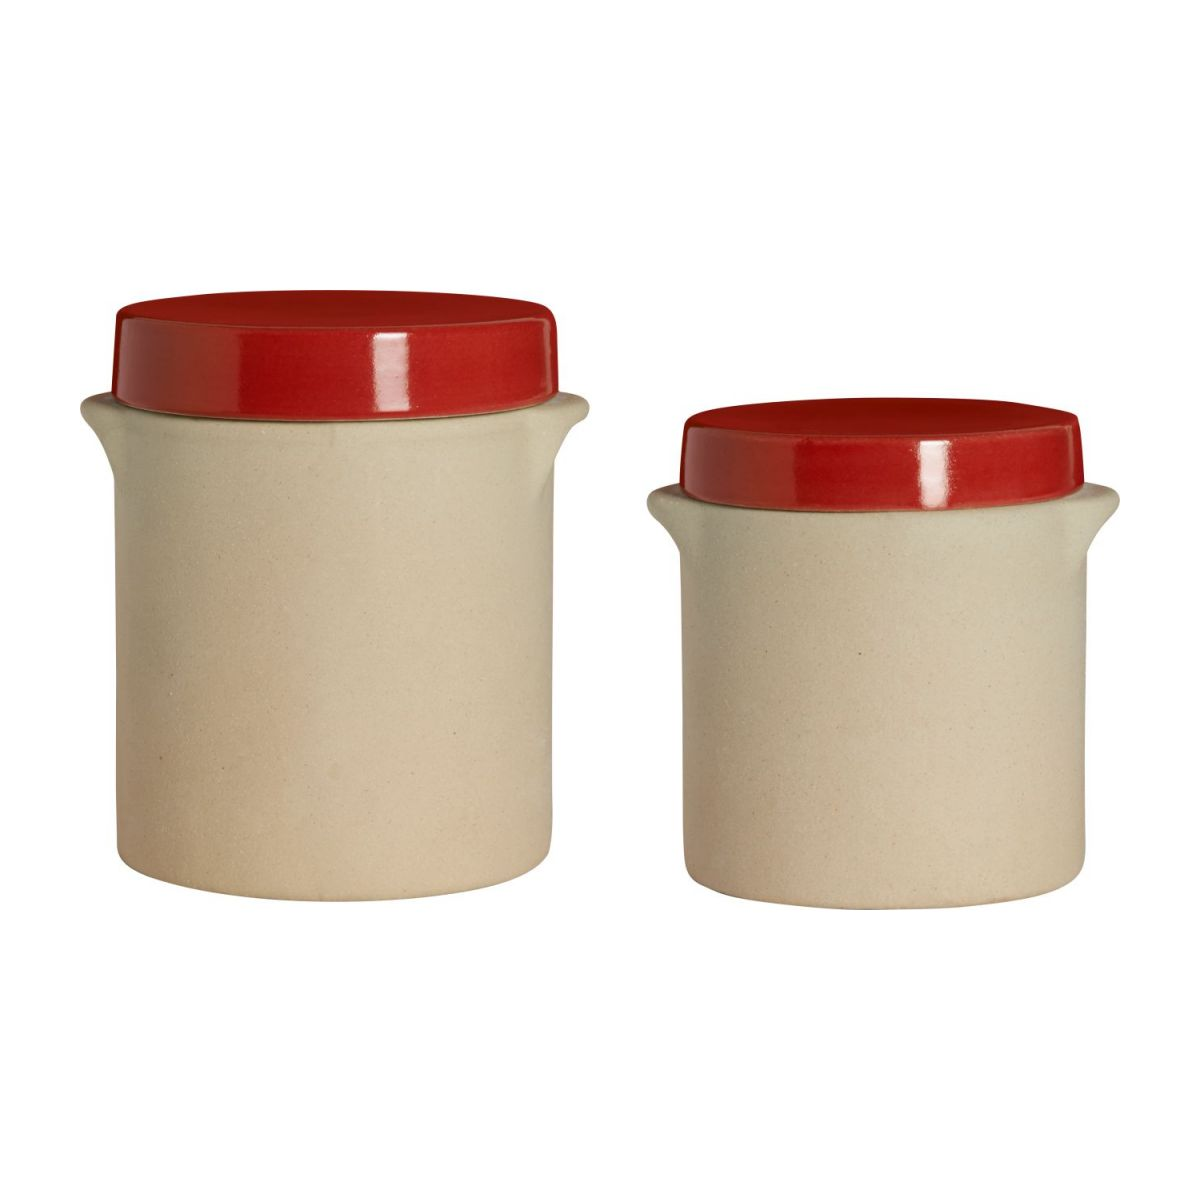 Box made in sandstone - 0,5L, natural and red n°9